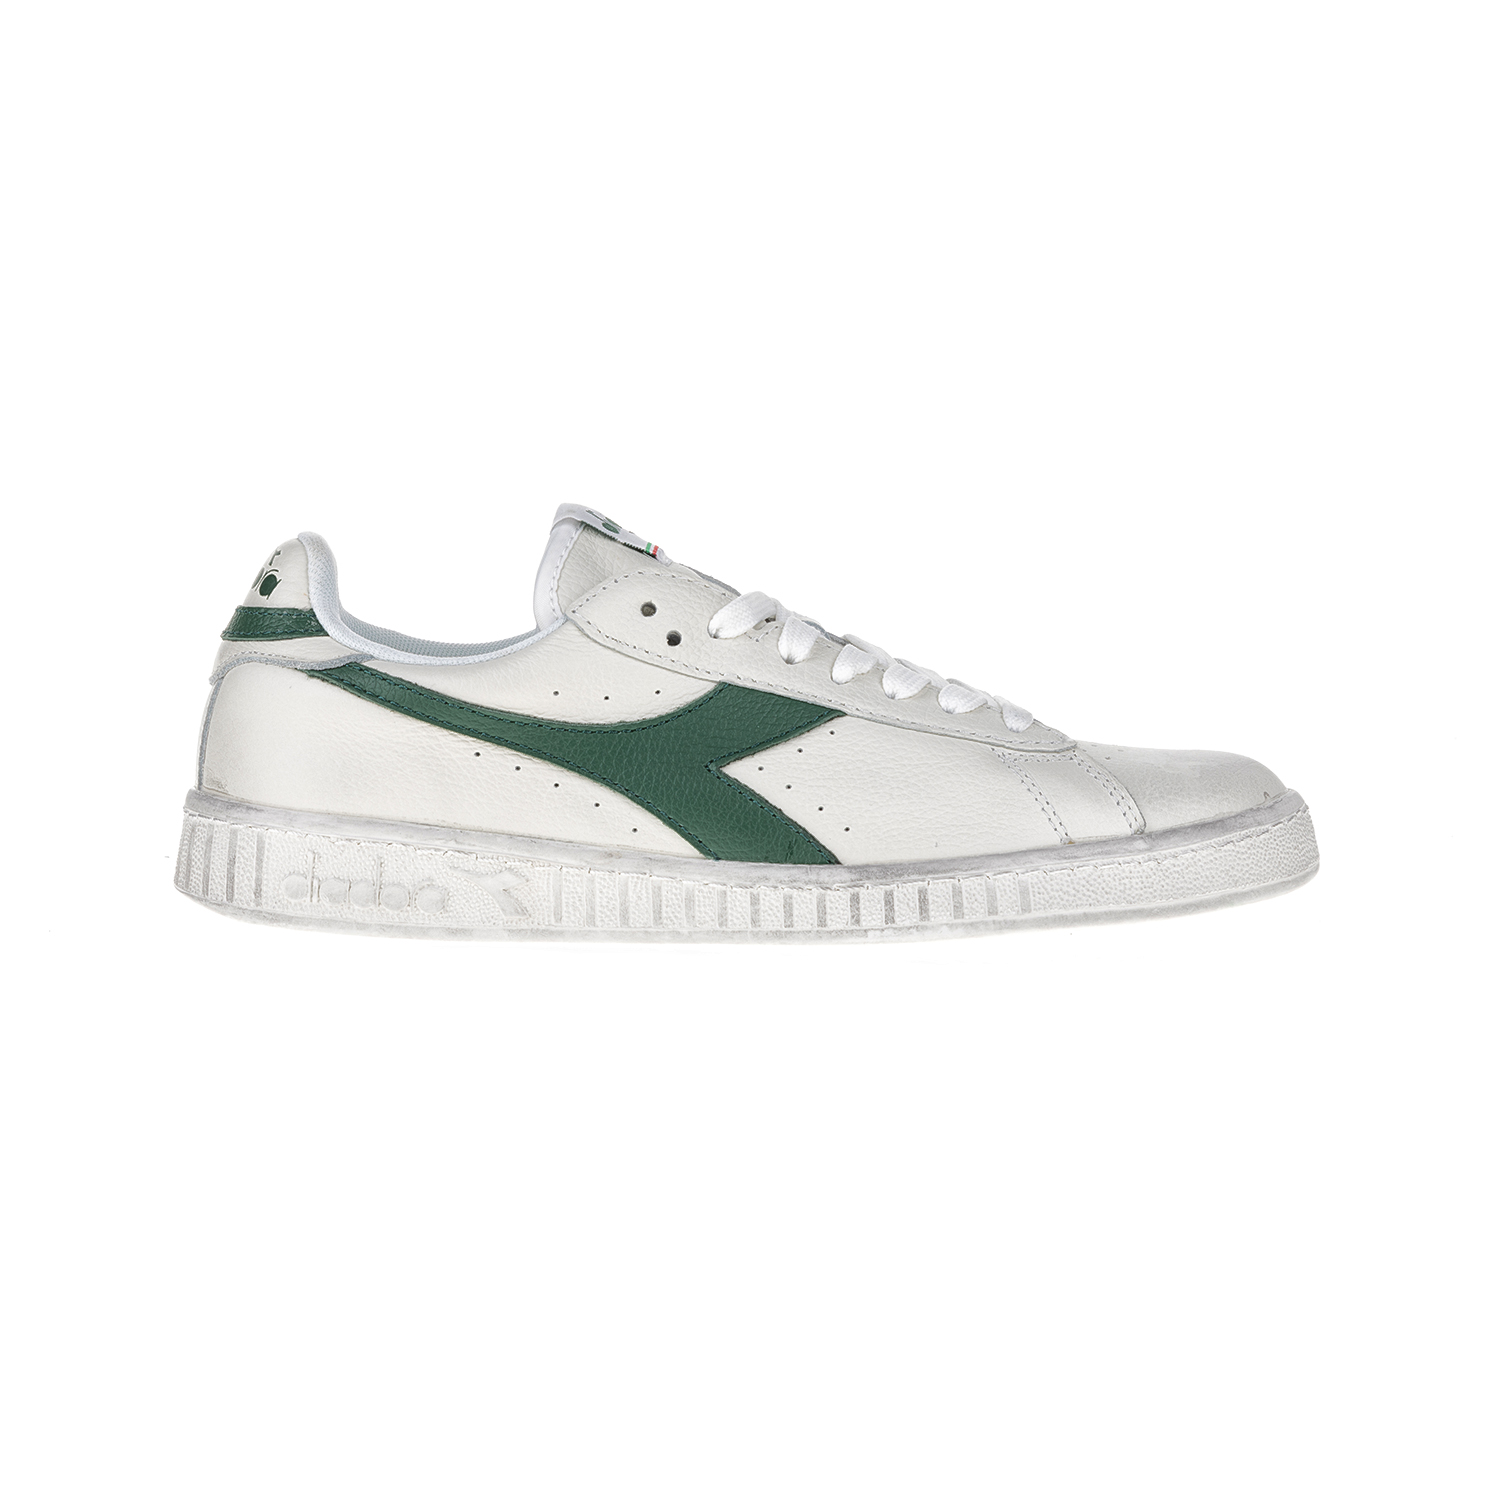 DIADORA – Unisex παπούτσια T1 T2 GAME L LOW WAXED λευκά